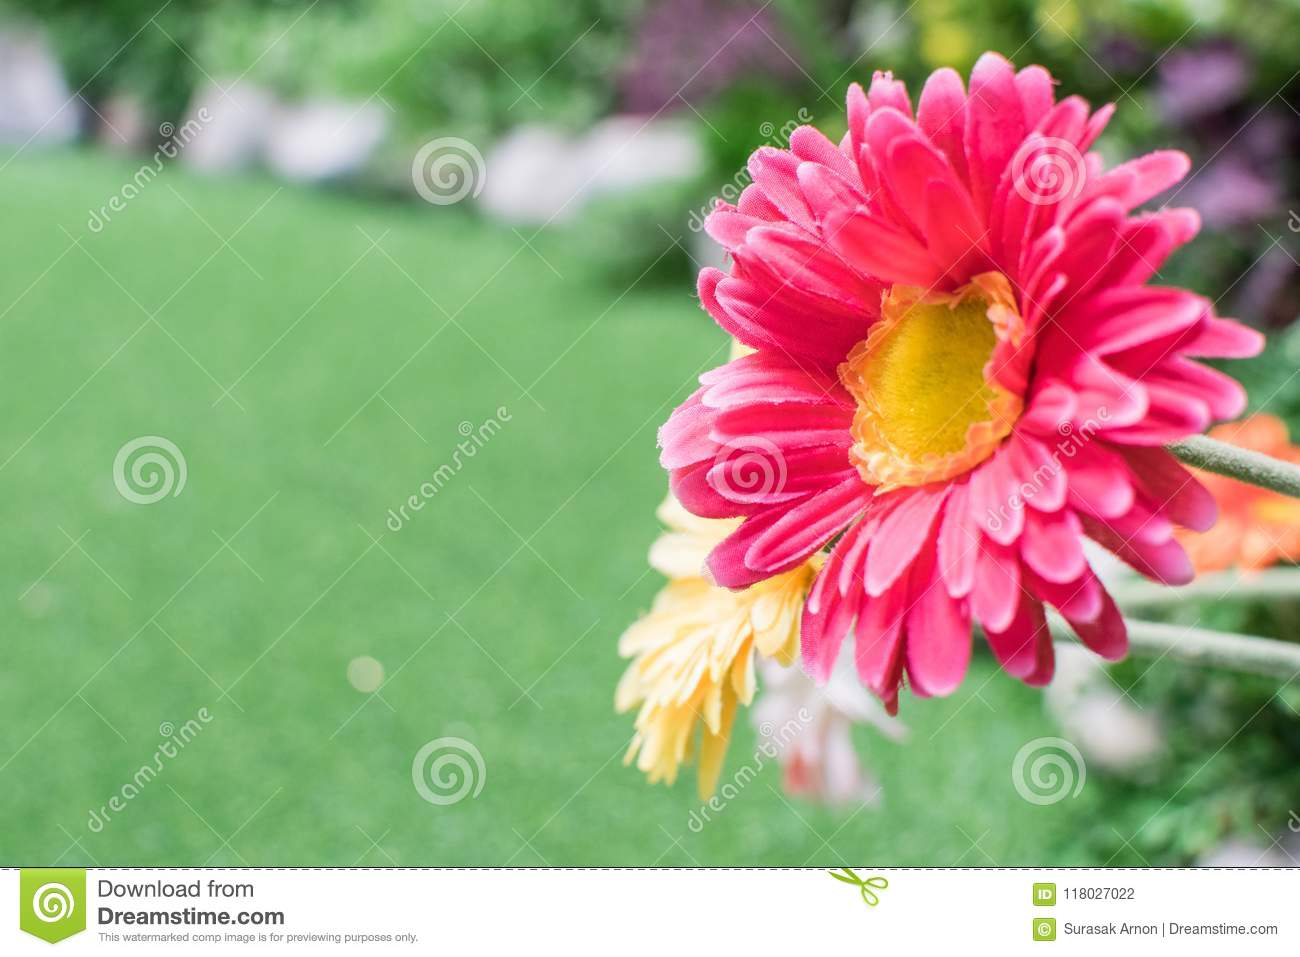 Pink Flowers Are Made Of Fabric With Artificial Green Grass Stock